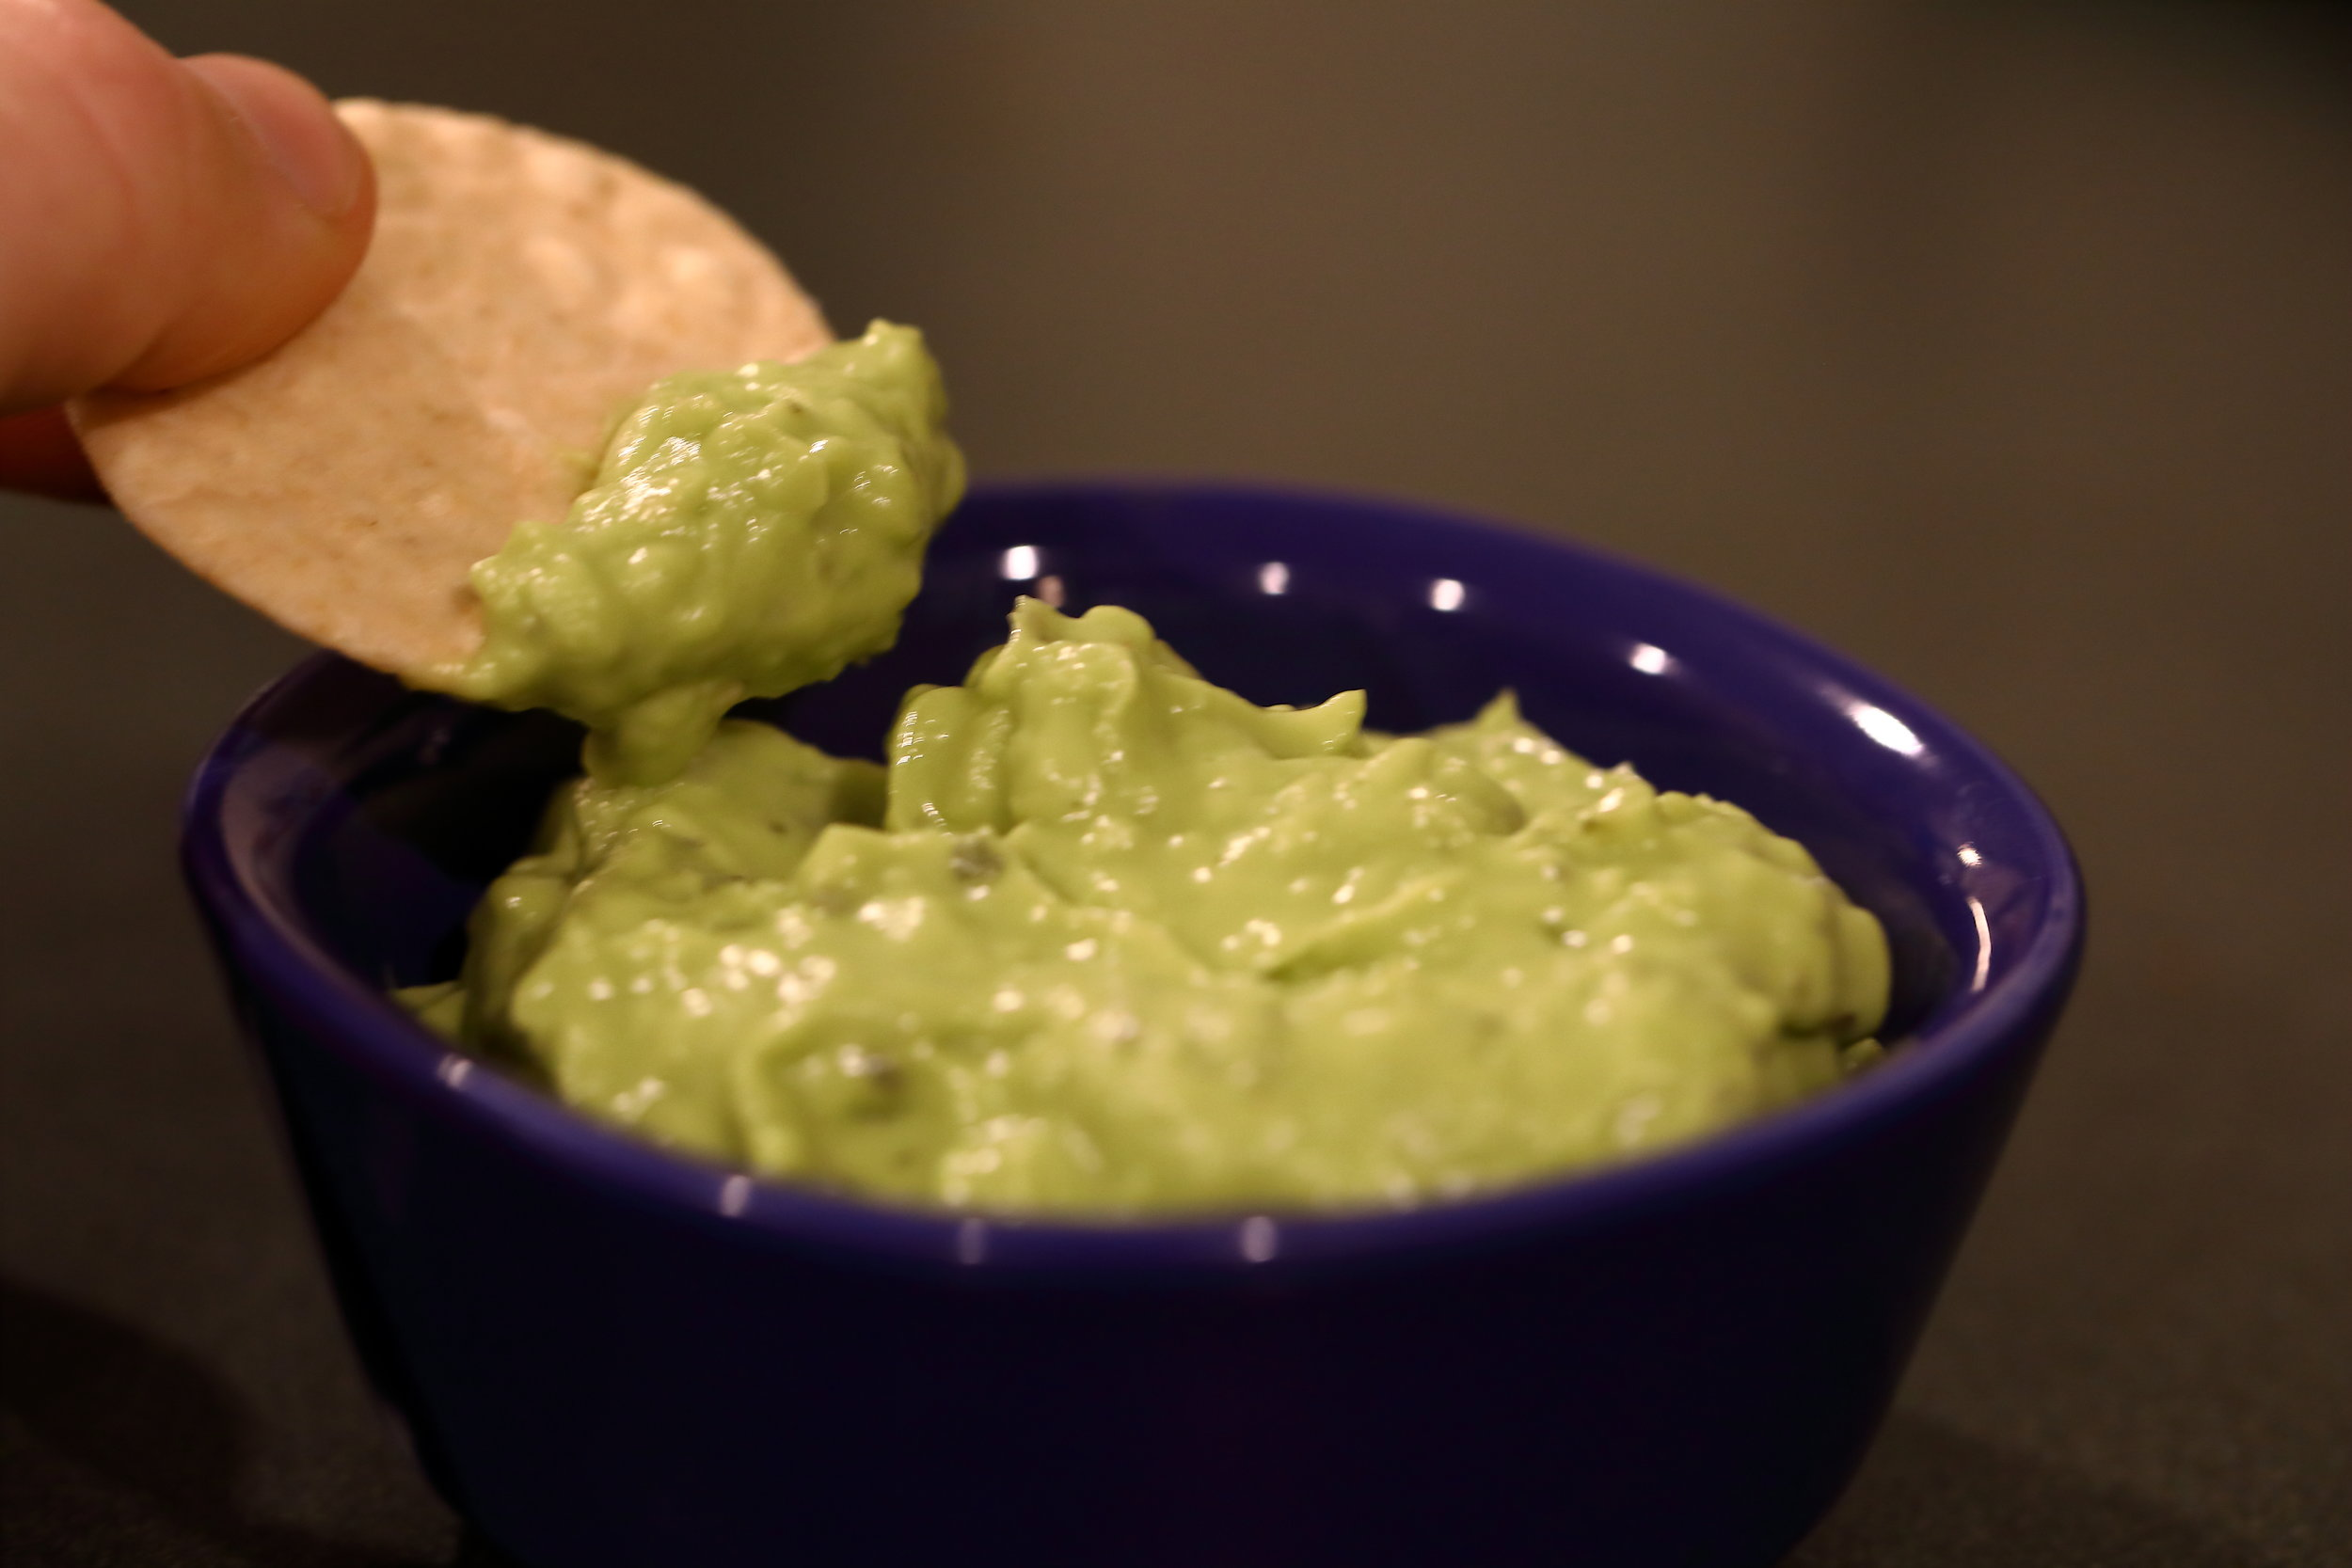 Healthy homemade guacamole with rice cracker.